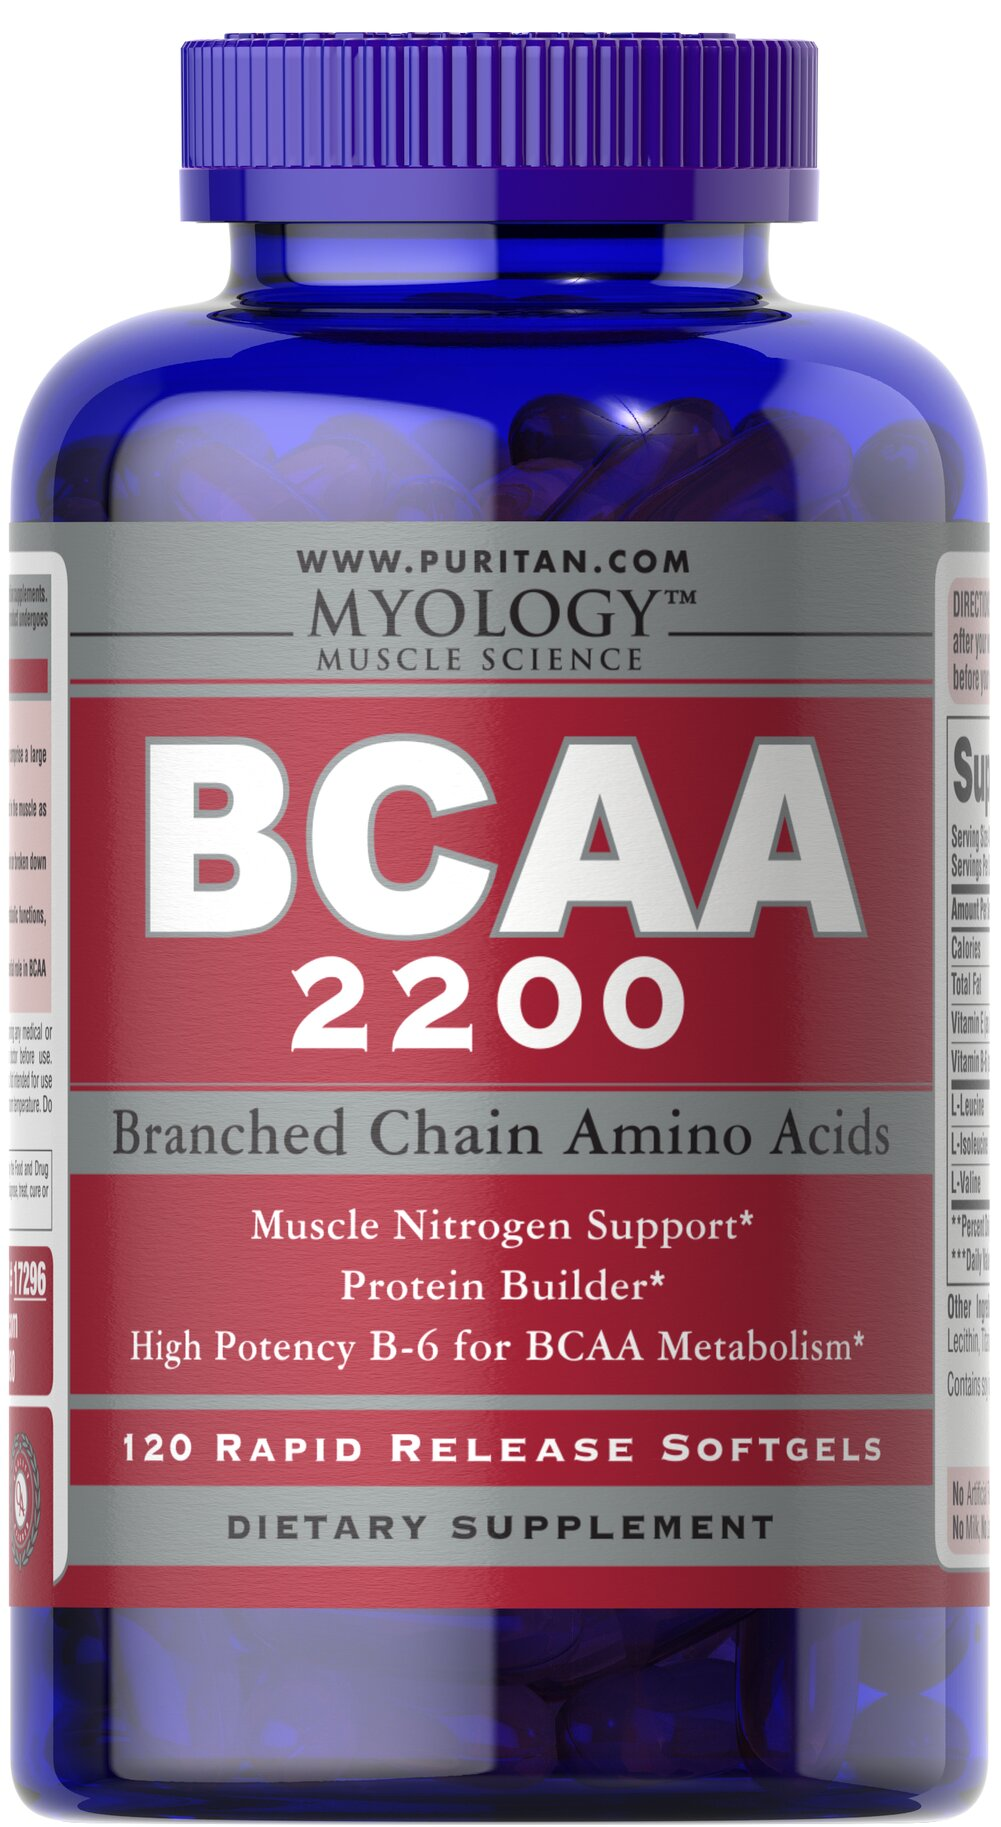 BCAA 2200 <p>BCAAs are especially important for bodybuilders since they comprise a large percentage of the amino acid composition of muscle.**</p><p>BCAAs are also the only aminos that are directly metabolized in the muscle as opposed to the liver.</p><p>Provides dual benefits since BCAAs can be used to build protein or broken down in muscle to supply a direct source of energy.**</p><p>BCAAs provide muscle nitrogen support for a variety of metabolic func